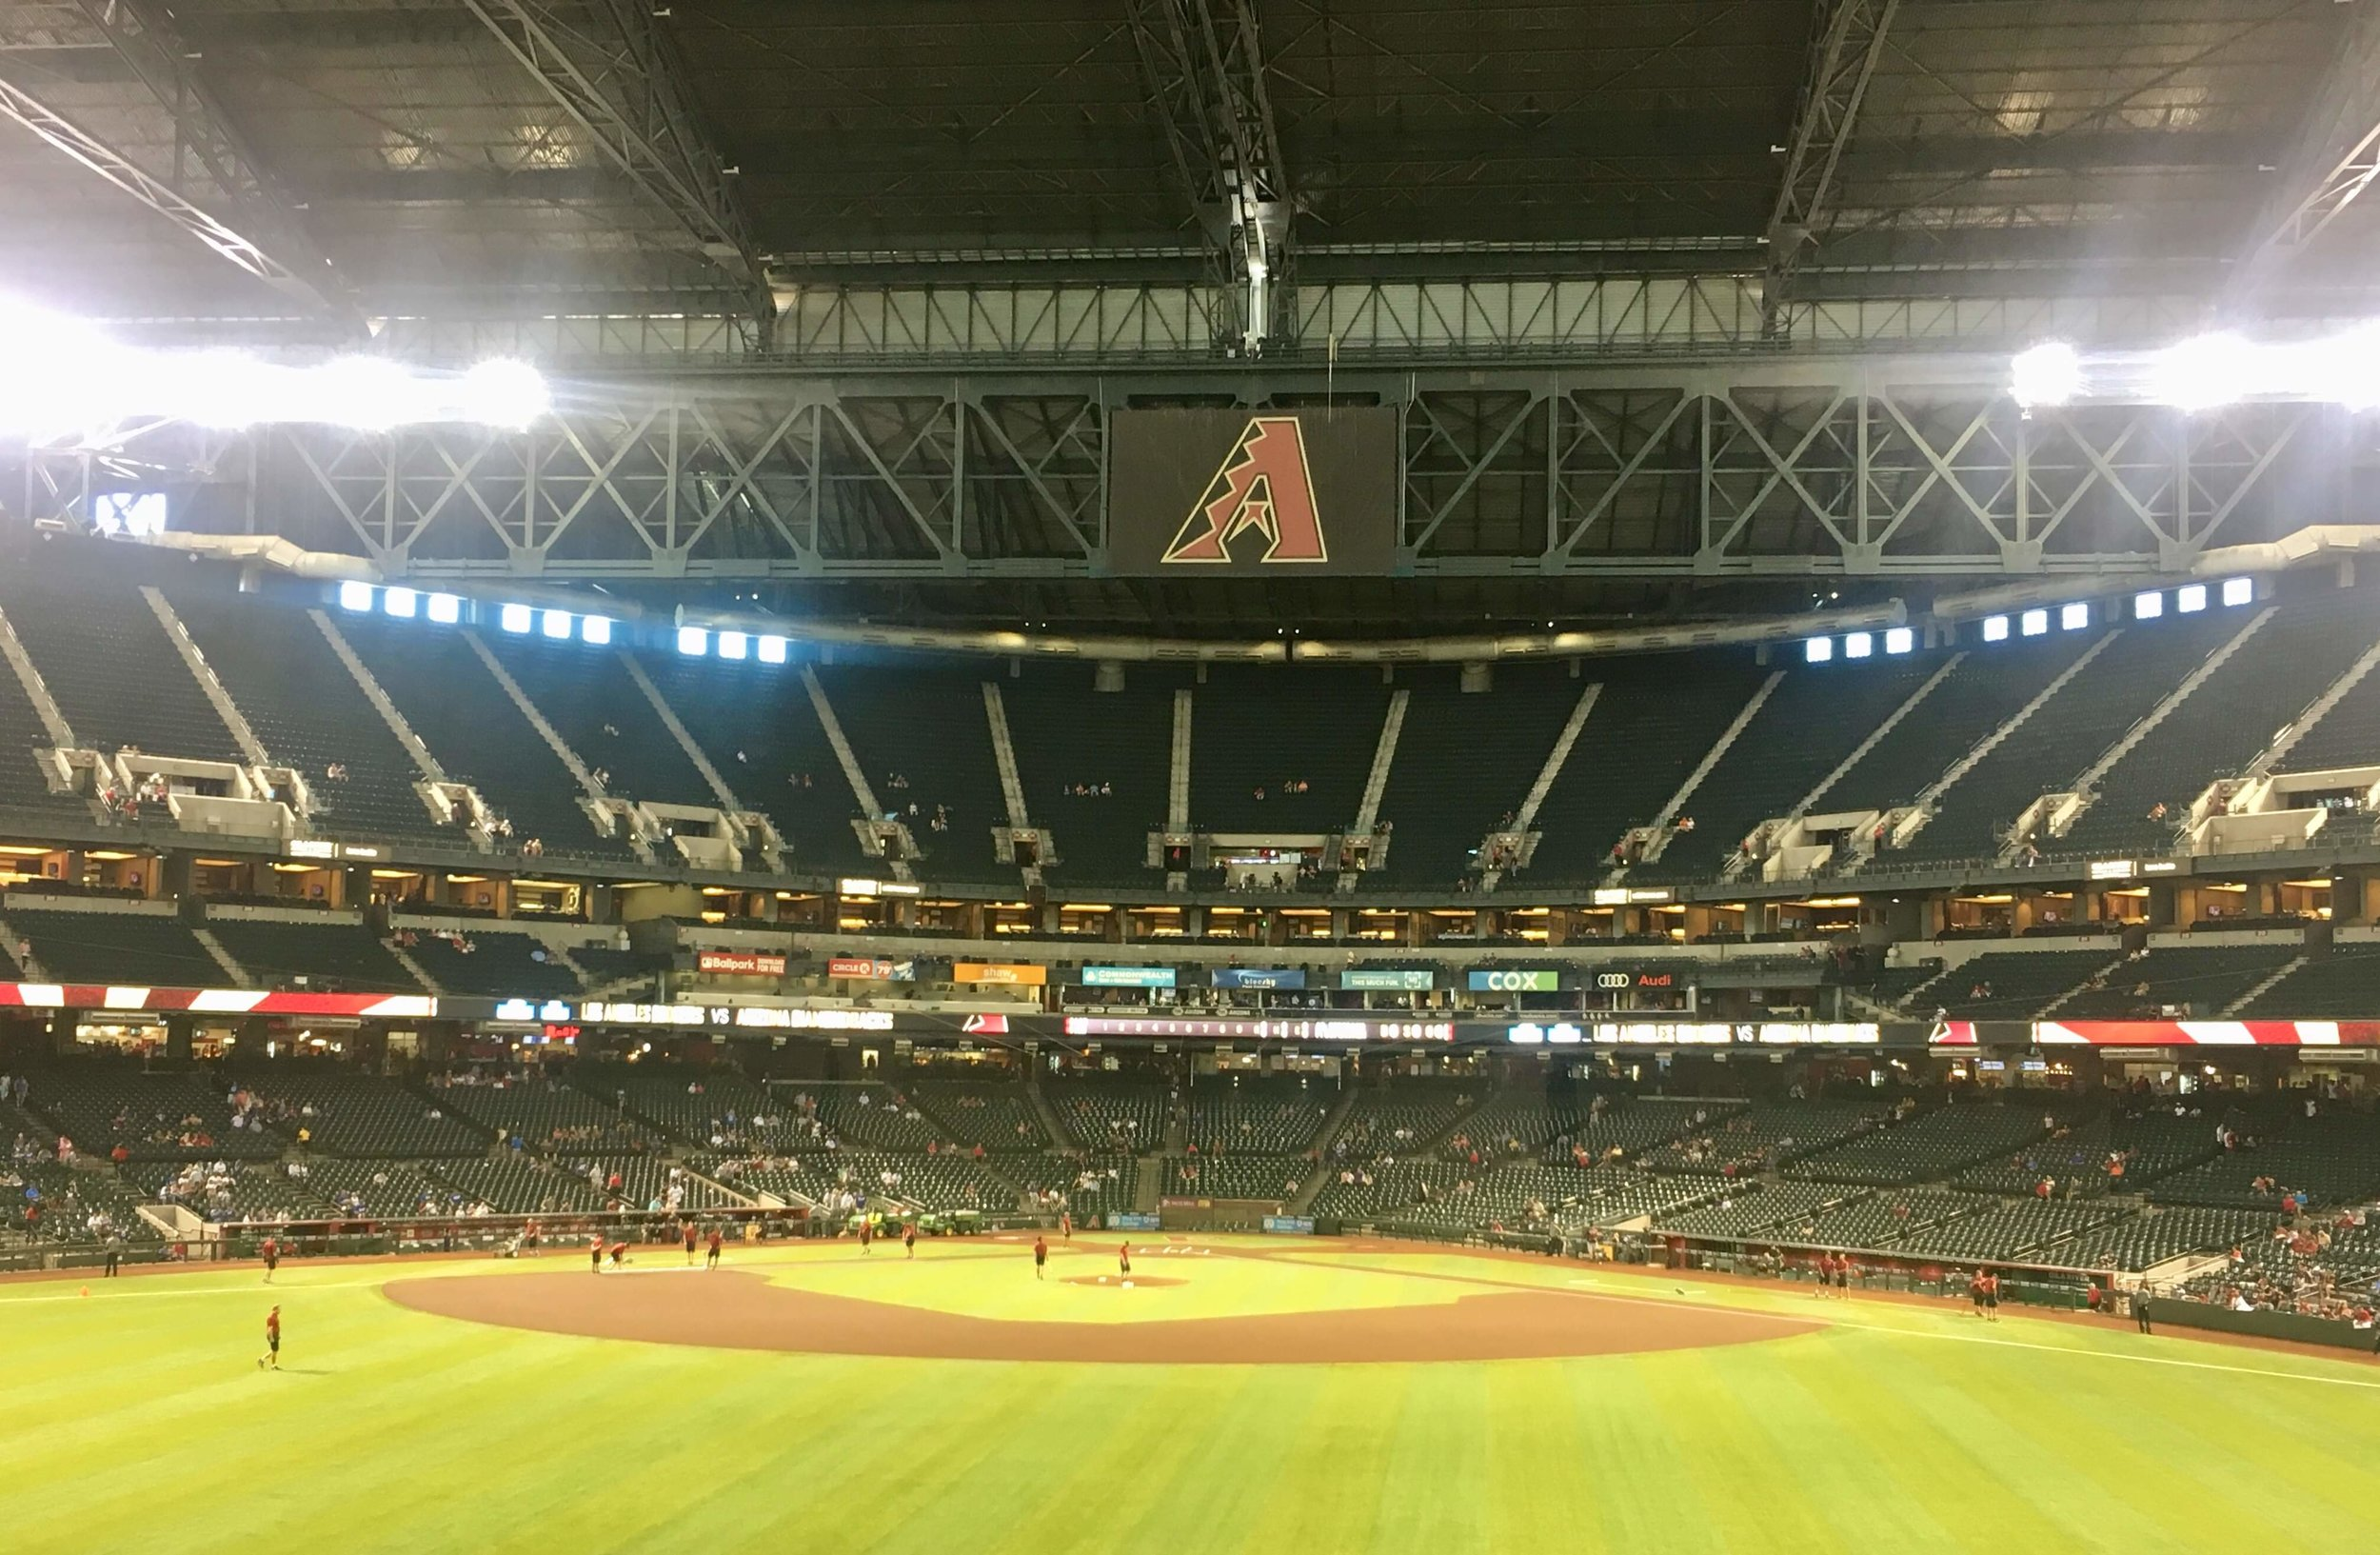 Chase Field had just replaced it's natural grass with artificial turf the year before we arrived